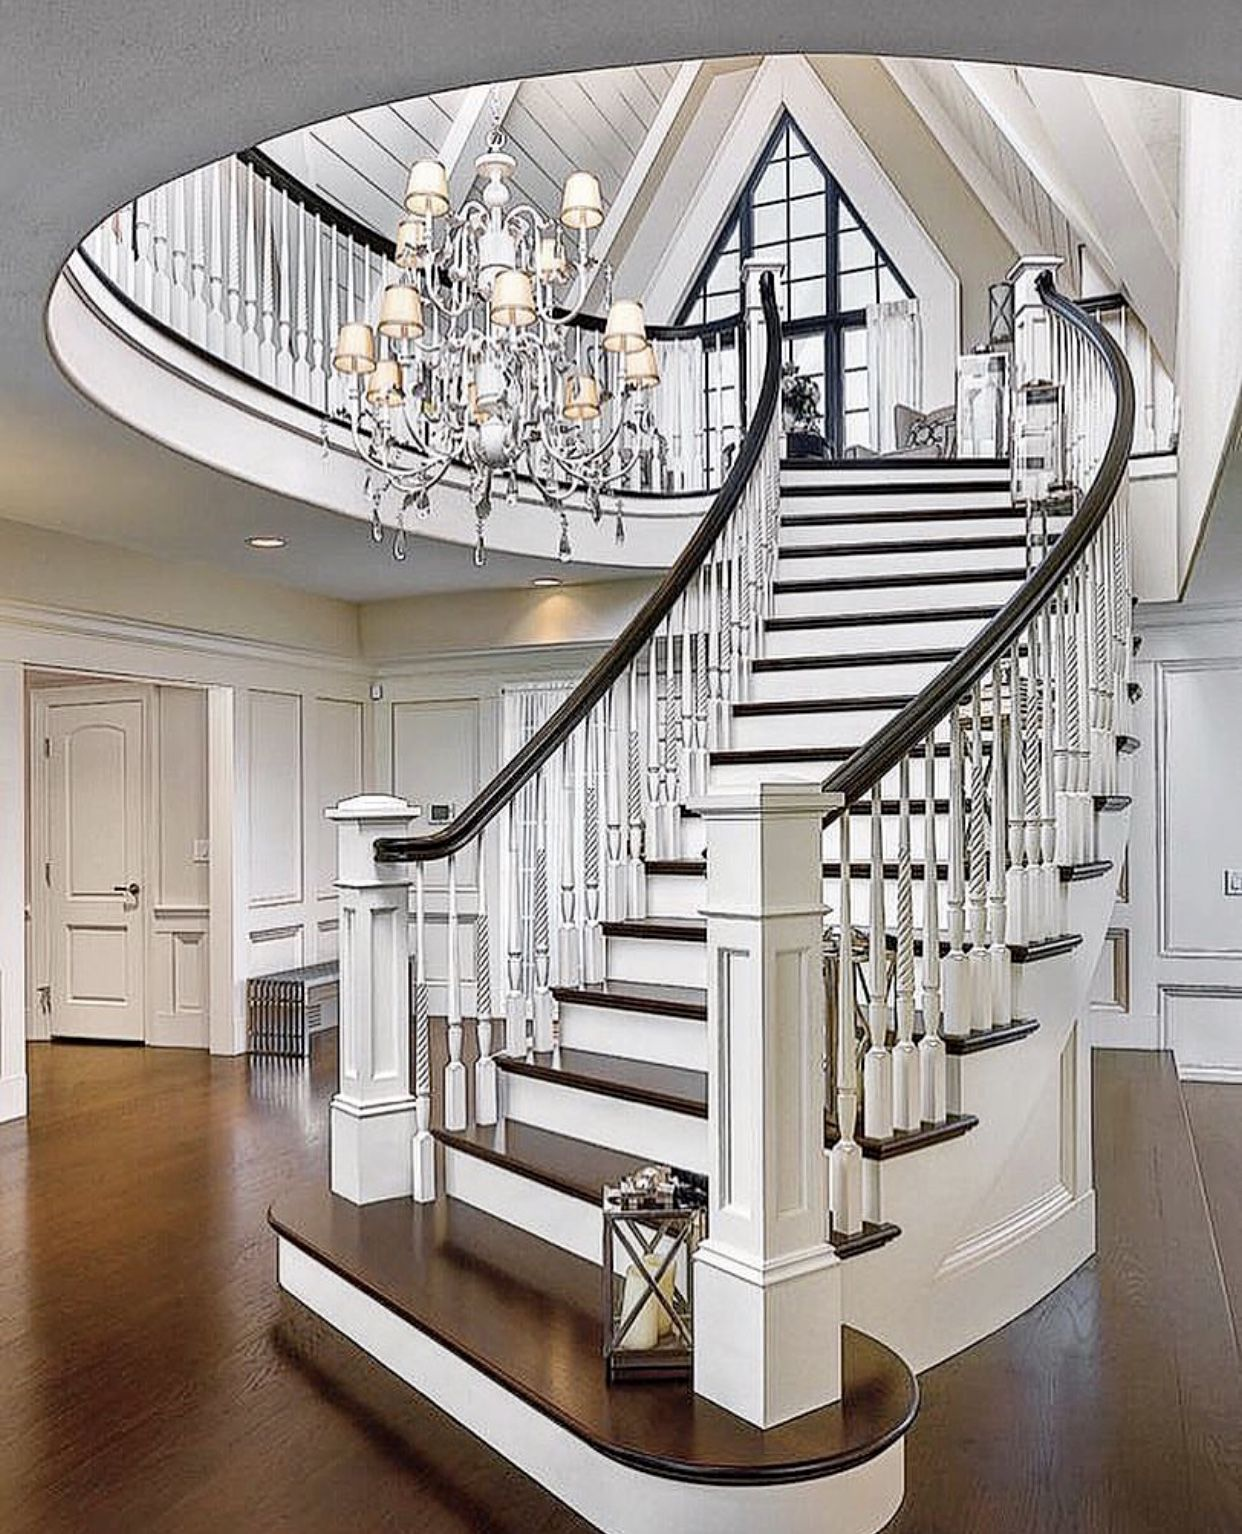 51 Stunning Staircase Design Ideas: Vacation Homes Image By Diana Kags